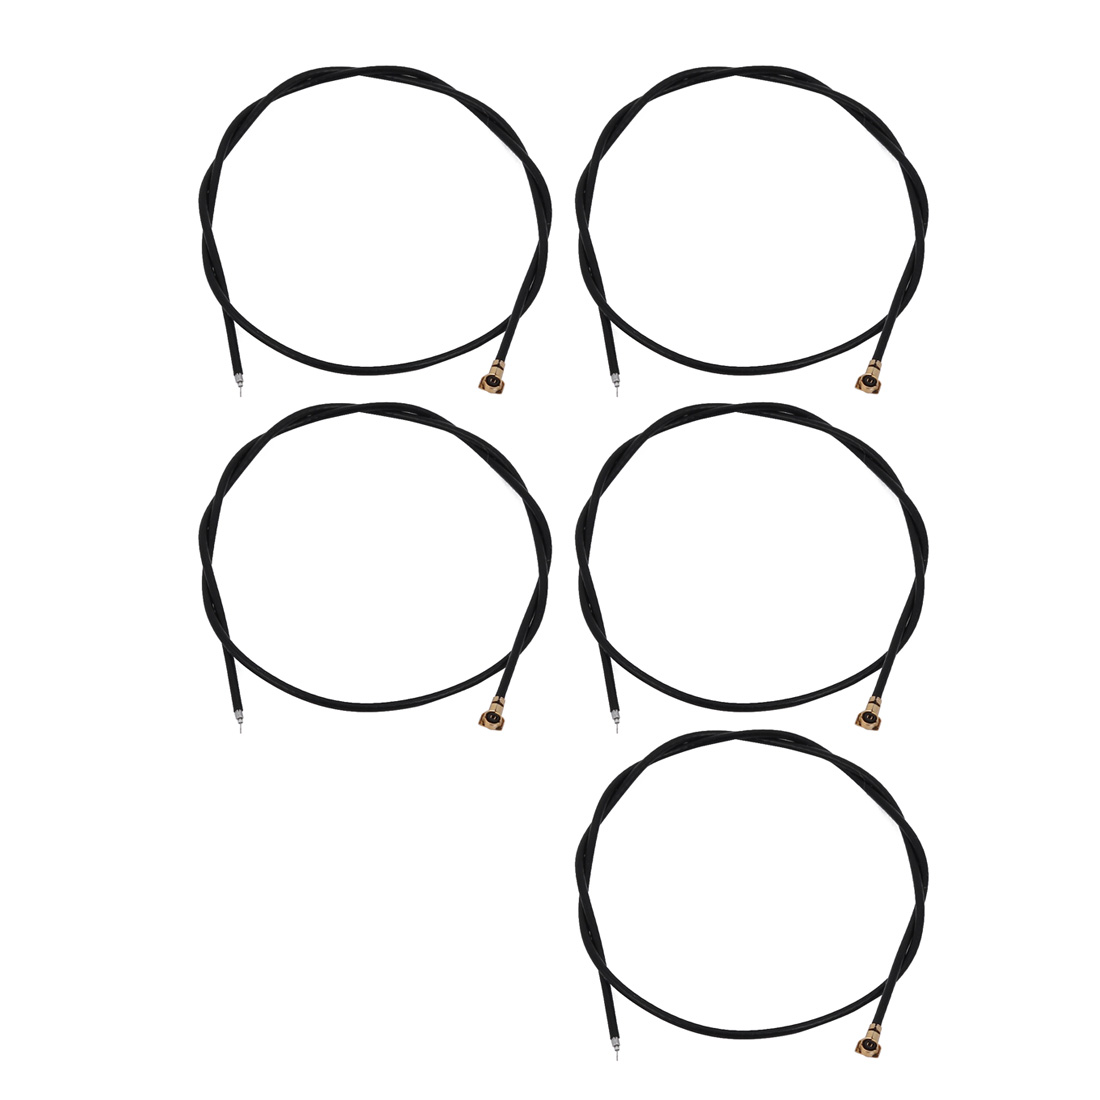 5Pcs Pigtail Antenna RF0.81 IPEX 4.0 Connector Extension Solder Cable 20cm Long